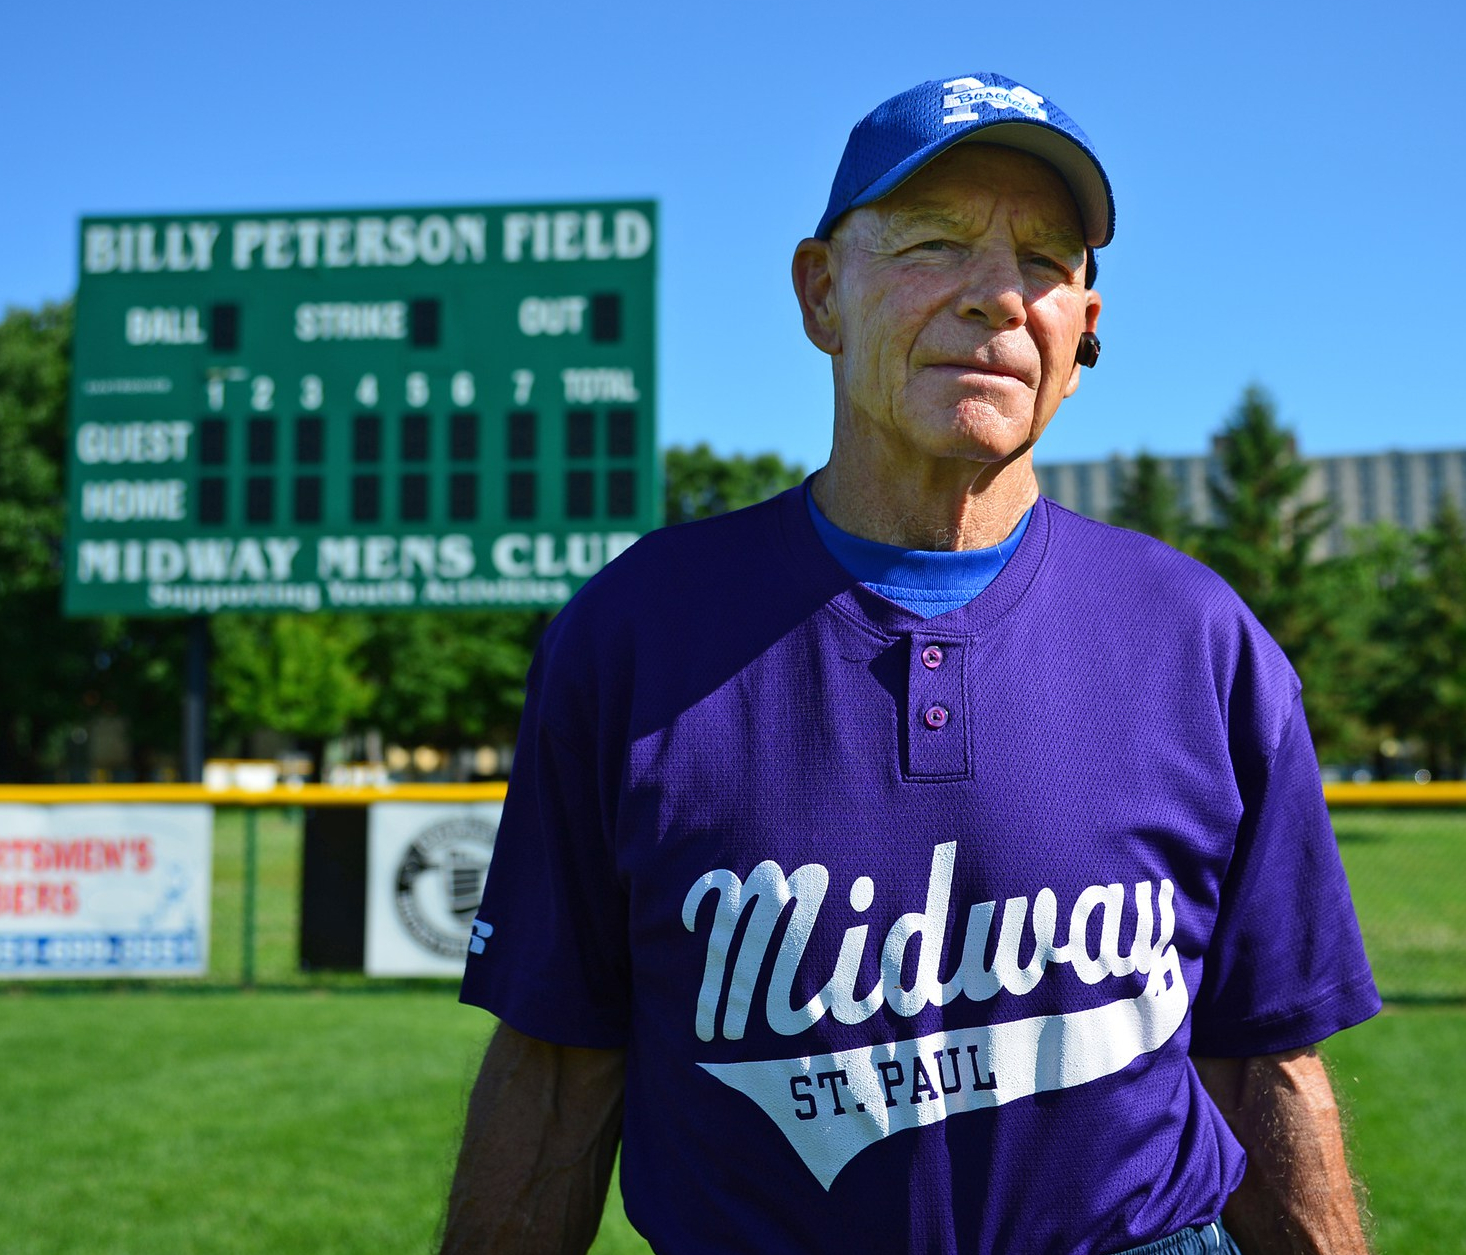 Billy Peterson, Saint Paul baseball coaching legend, worked with hundreds of city boys. Notable major leaguers Peterson coached were Dave Winfield and Paul Molitor. Courtesy Richard Sennott, StarTribune.